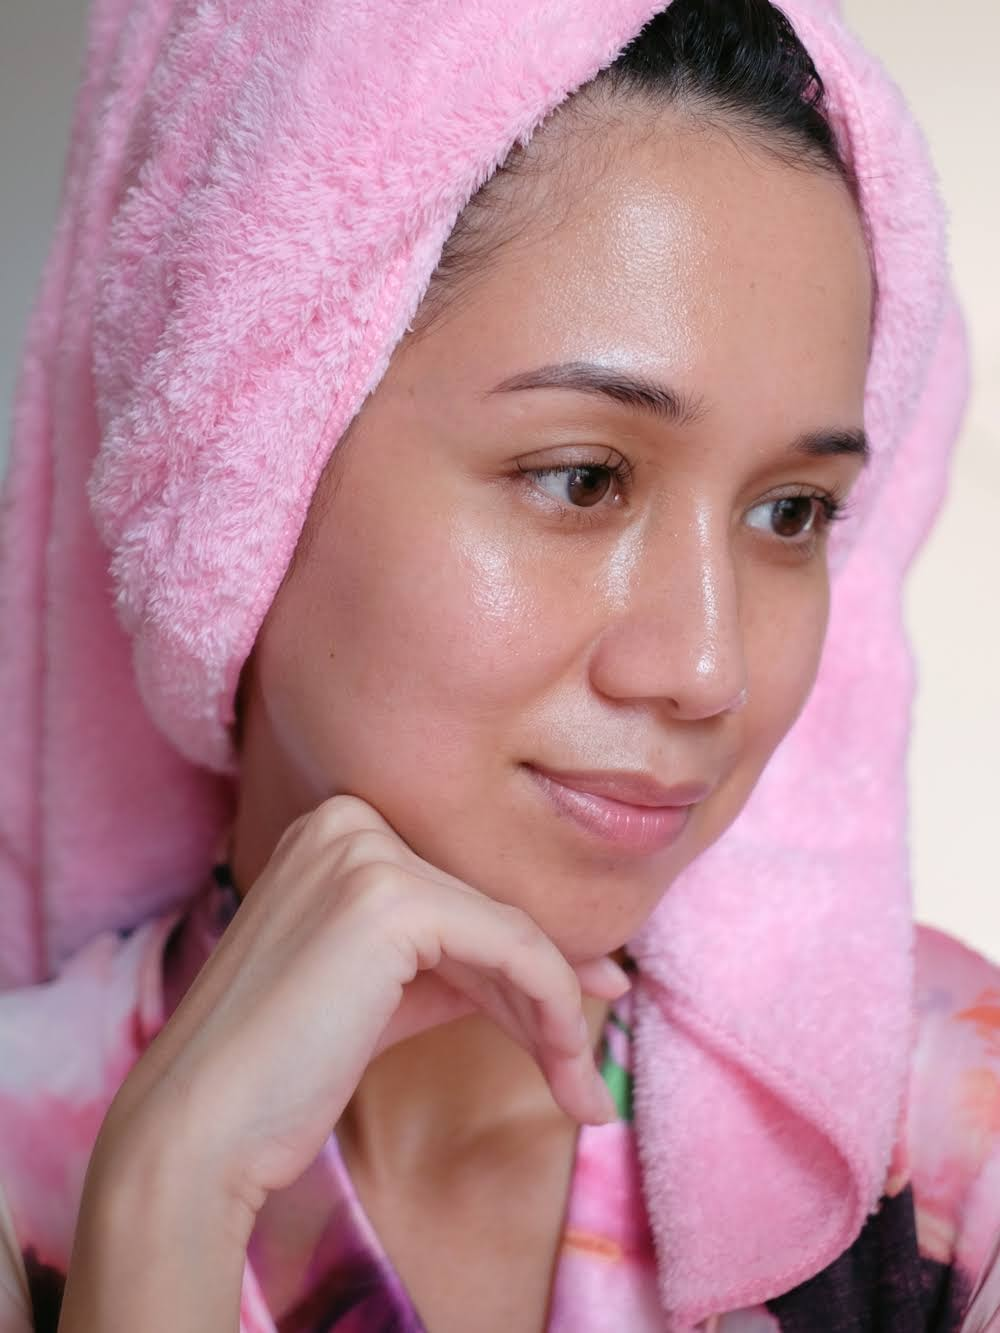 Cebu Beauty Blogger - Morning Skincare Routine - La Mer - Origins - SK-II - Cebu Mommy Blogger - Luxury Skincare - Cebu Blogger